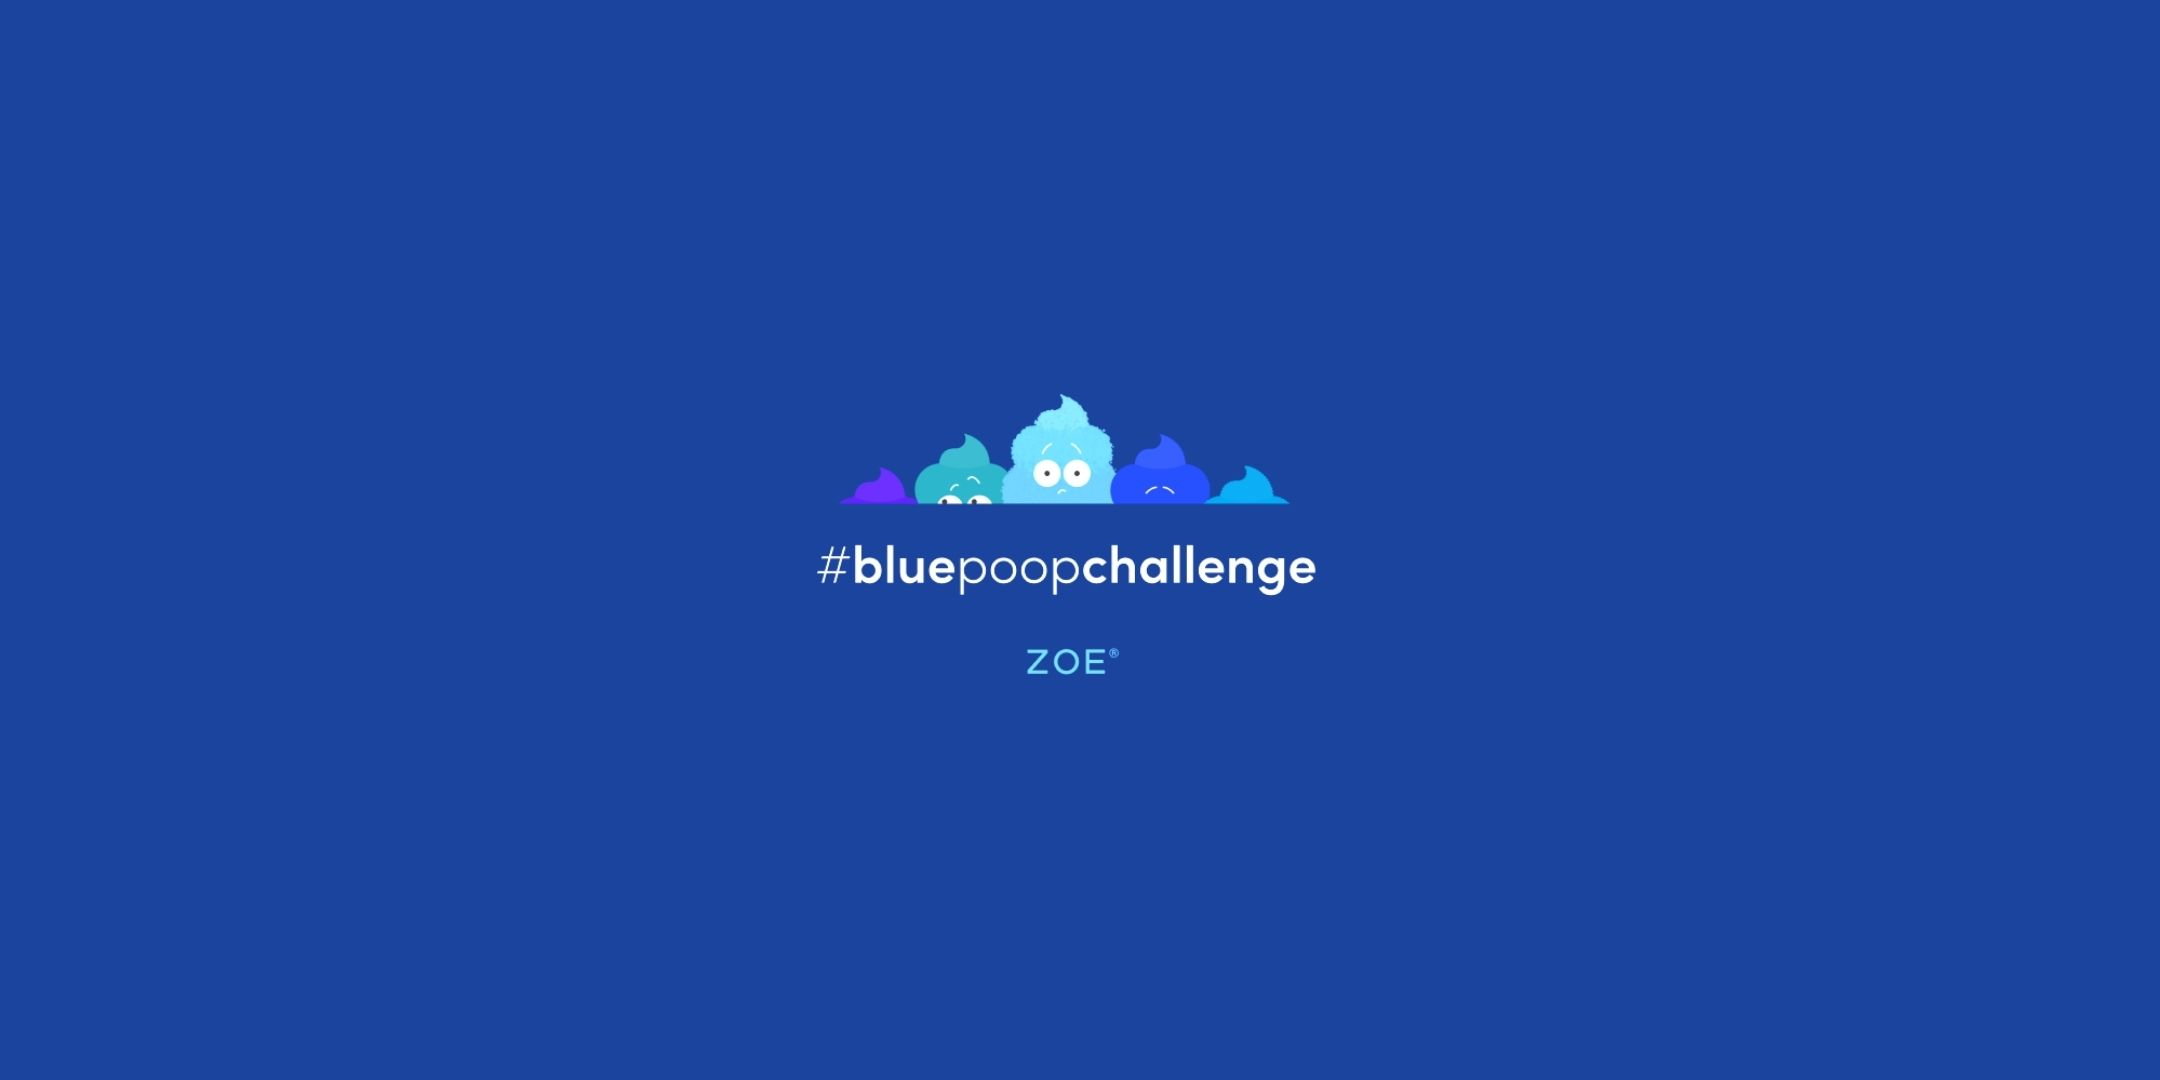 We've Launched the #bluepoopchallenge to Help People Learn About Their Gut Health!